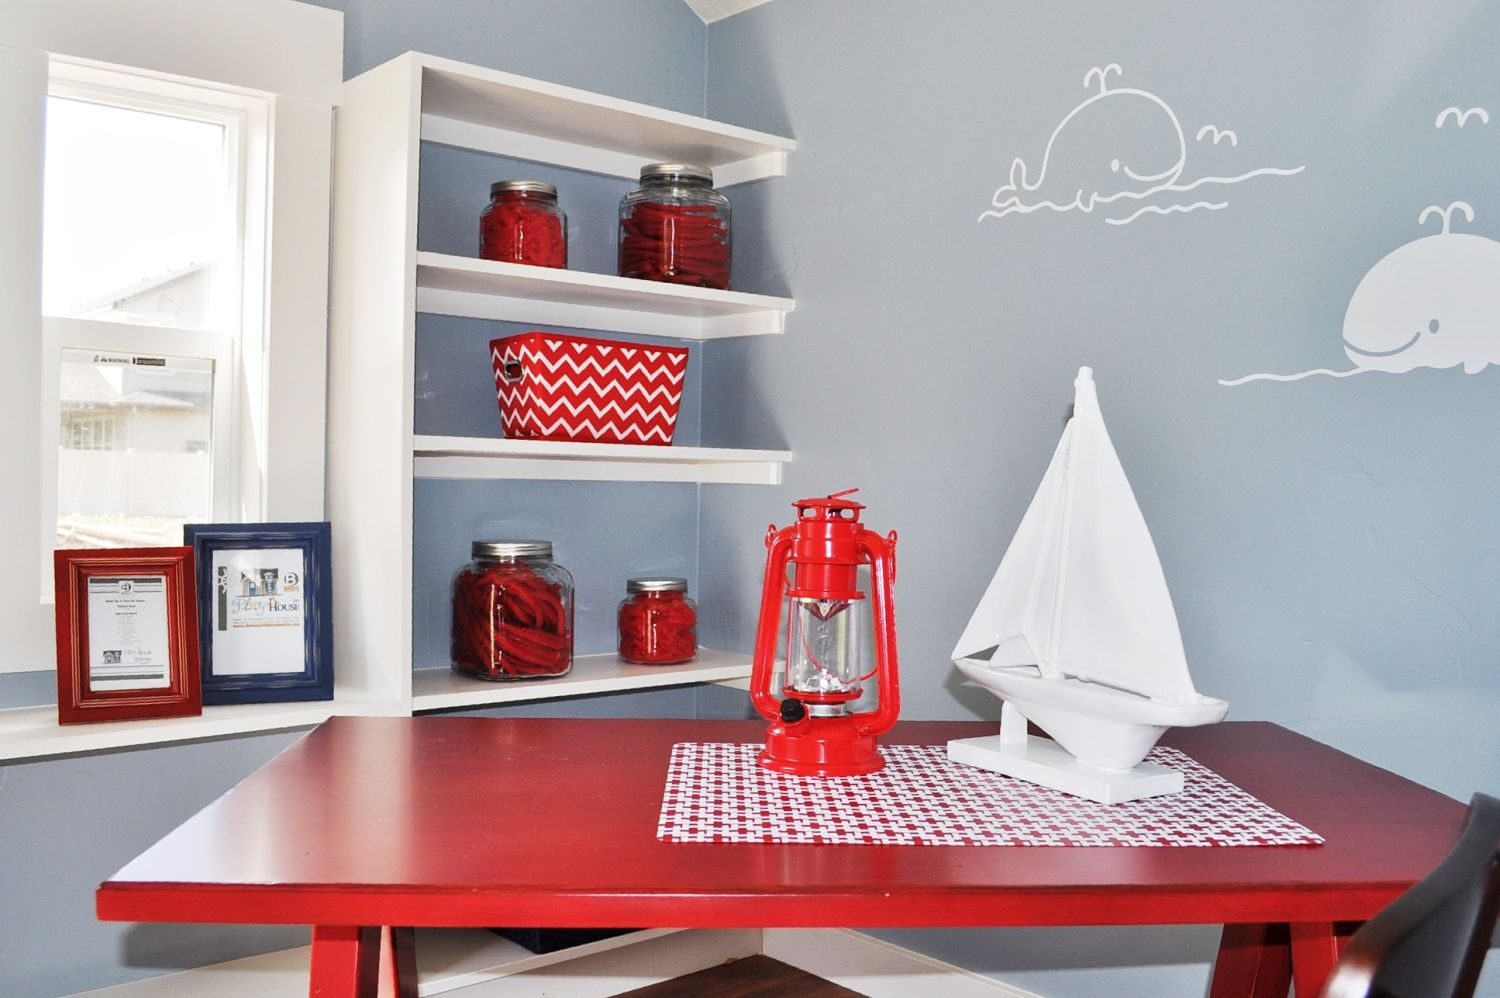 Image of child's table inside Make a wish tiny home.